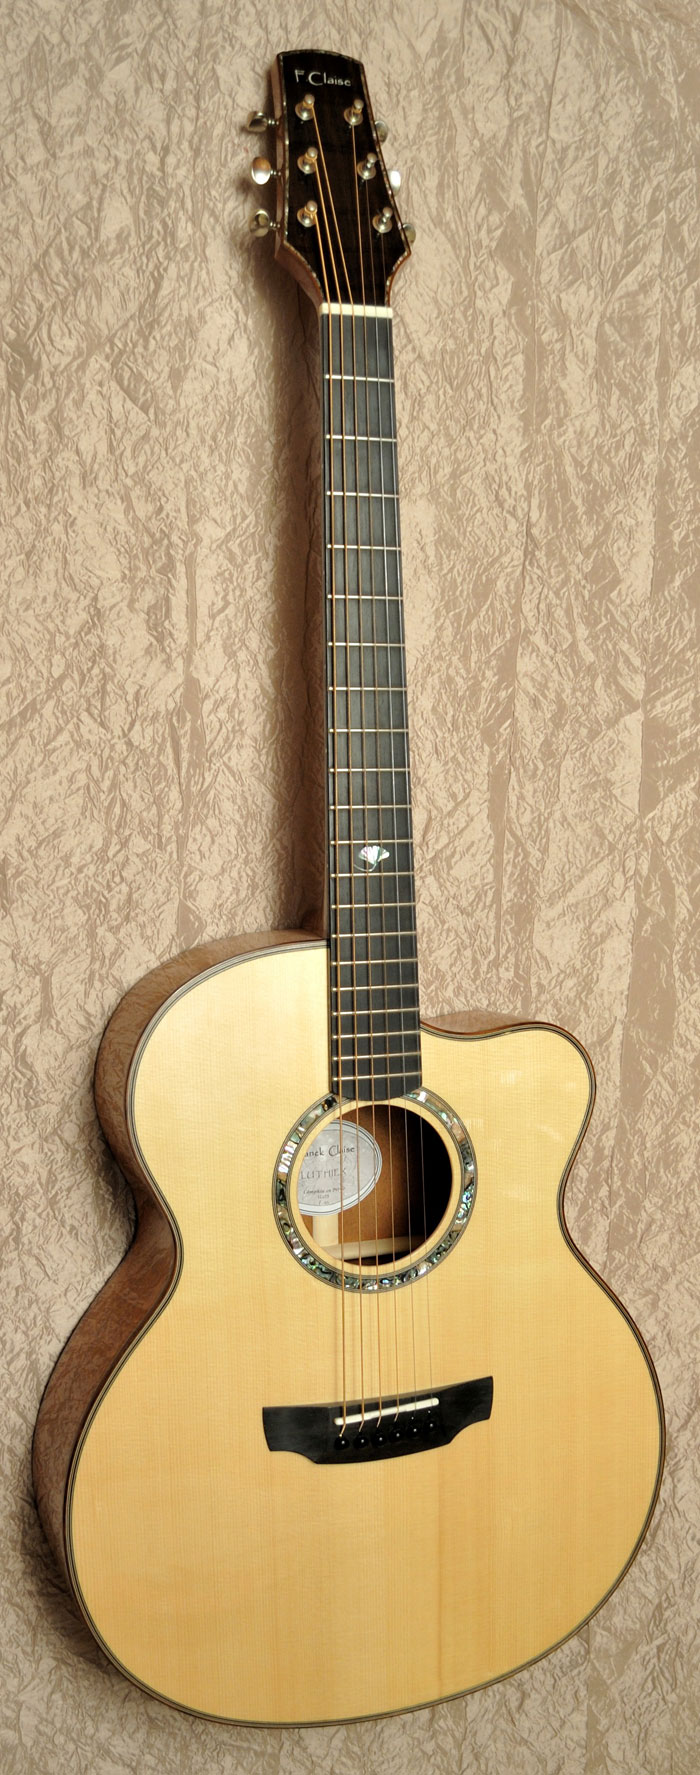 boutique guitare laguitare.com : vente guitare Fish